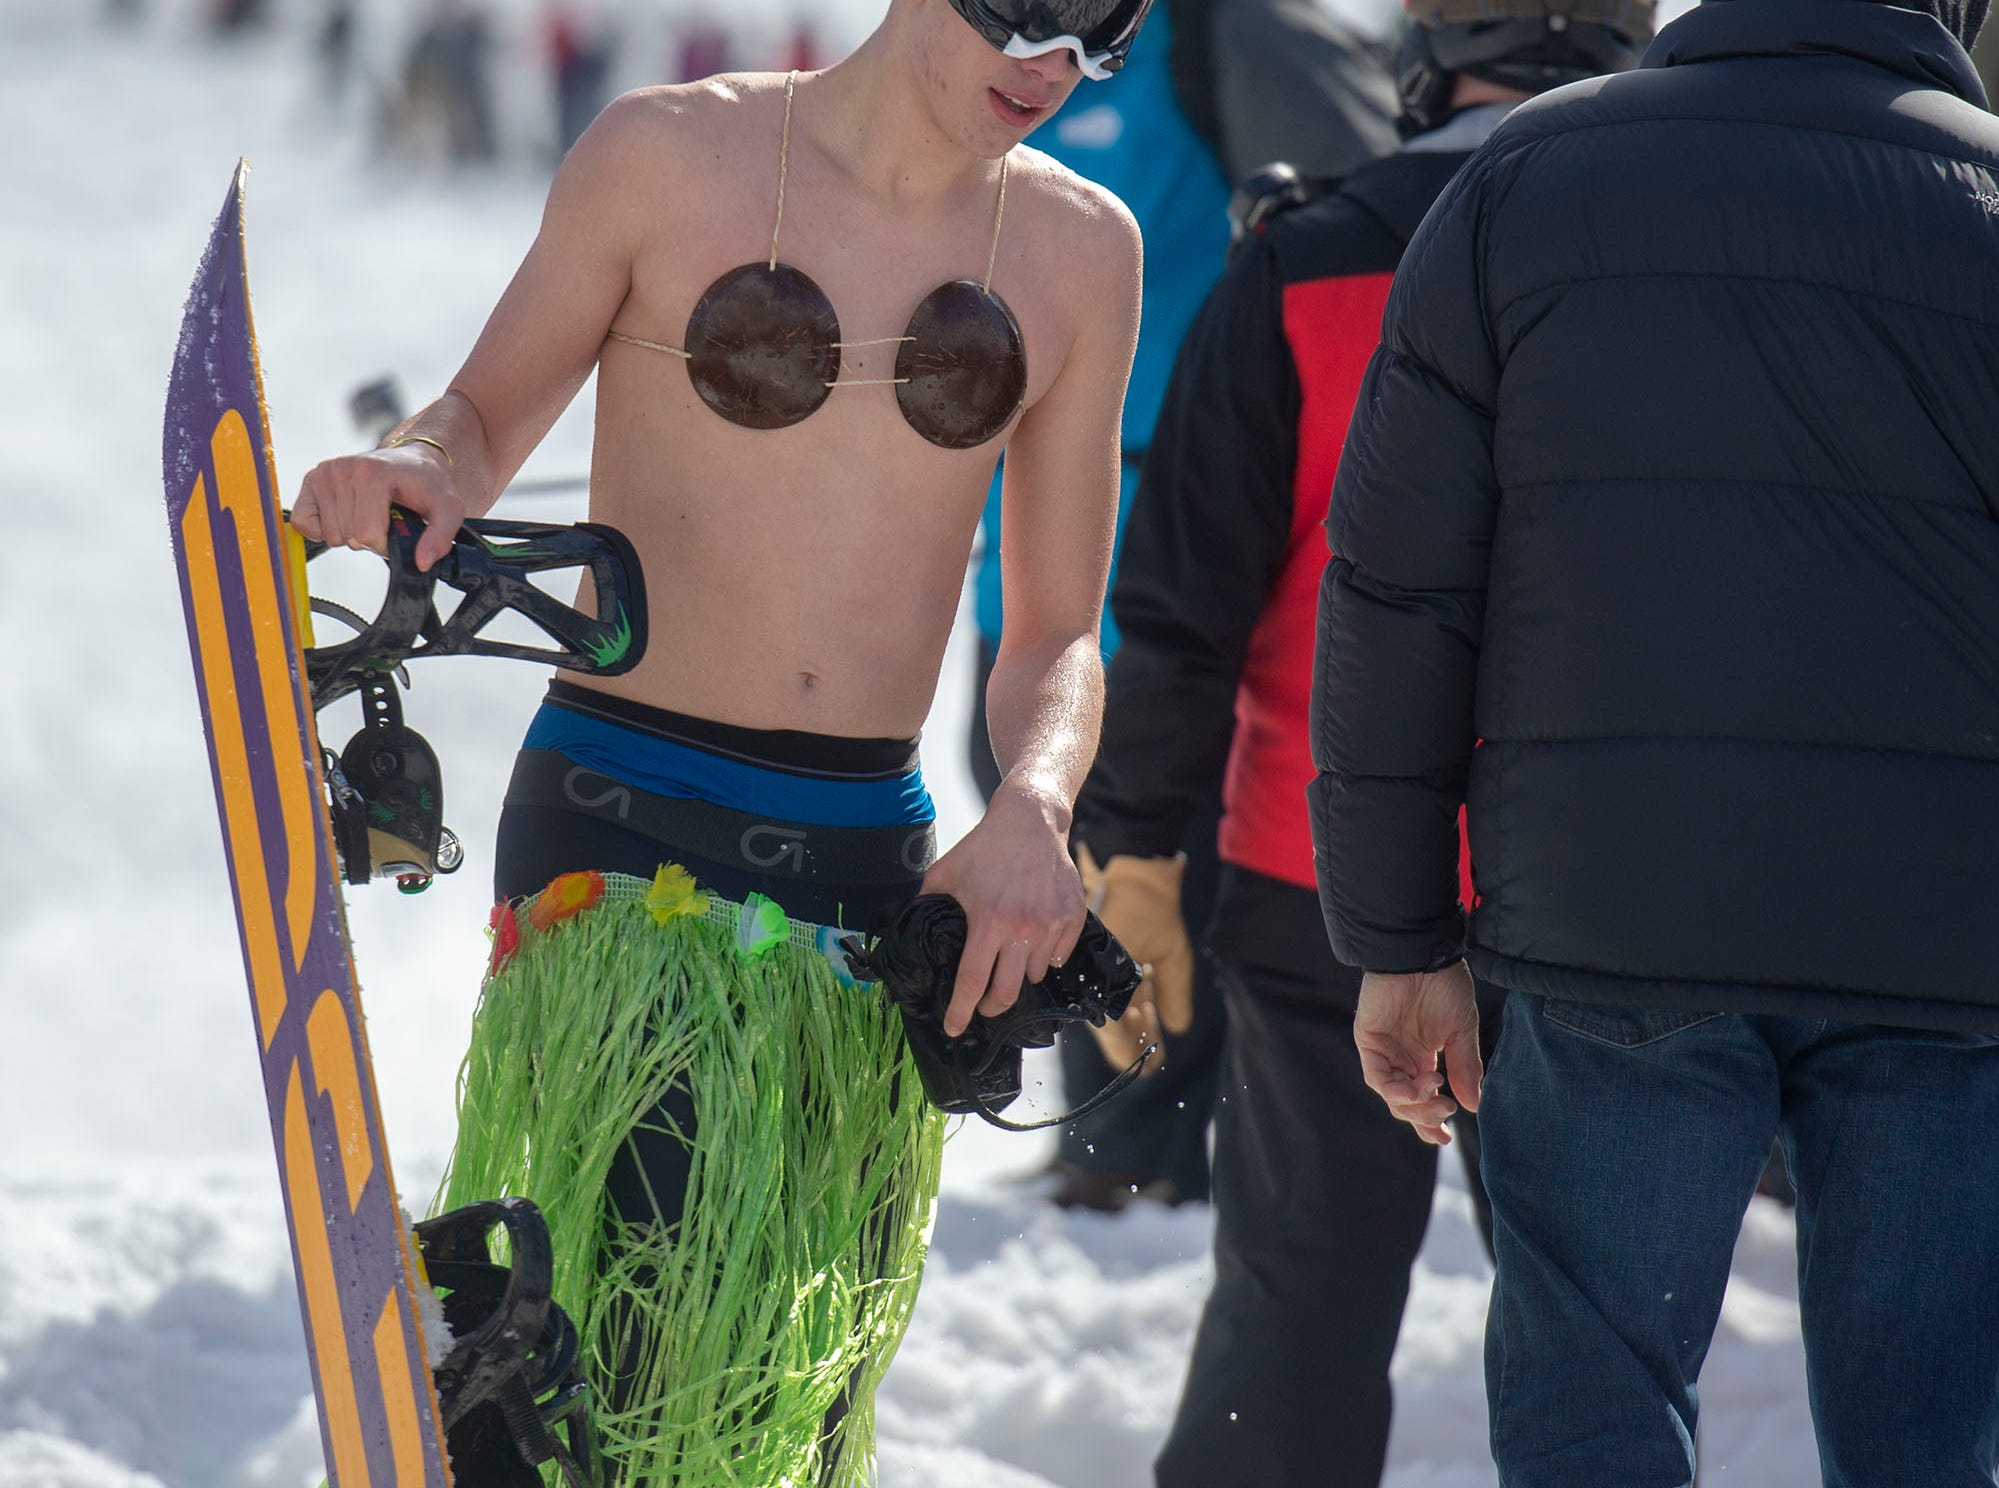 Some costumes at Roundtop Mountain Resort's pond skimming on Saturday, March 16, 2019, were better suited to surfing than snowboarding.